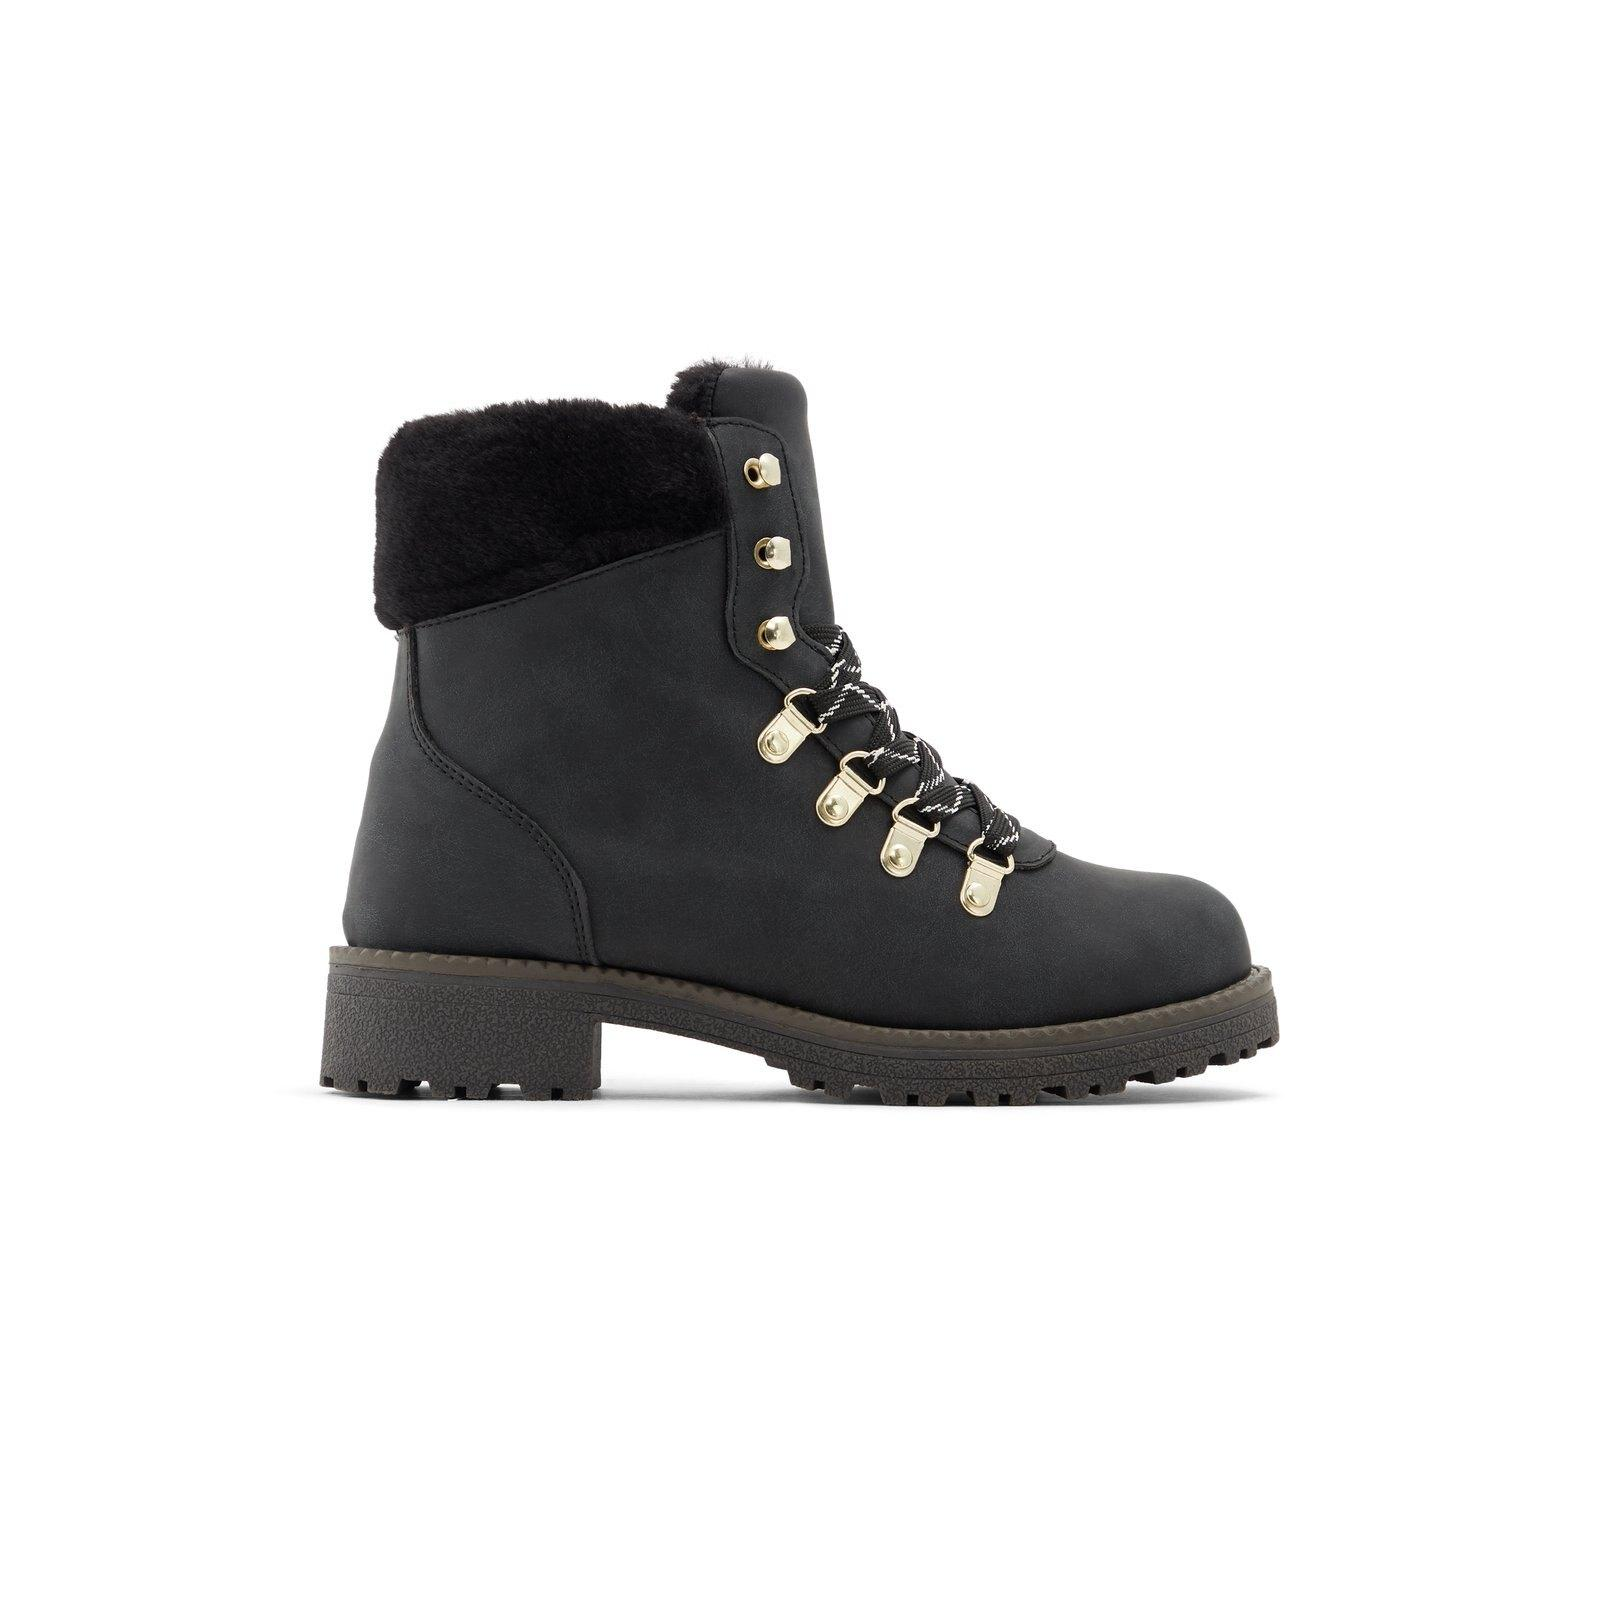 call-it-spring-boots-1574112529543.jpg